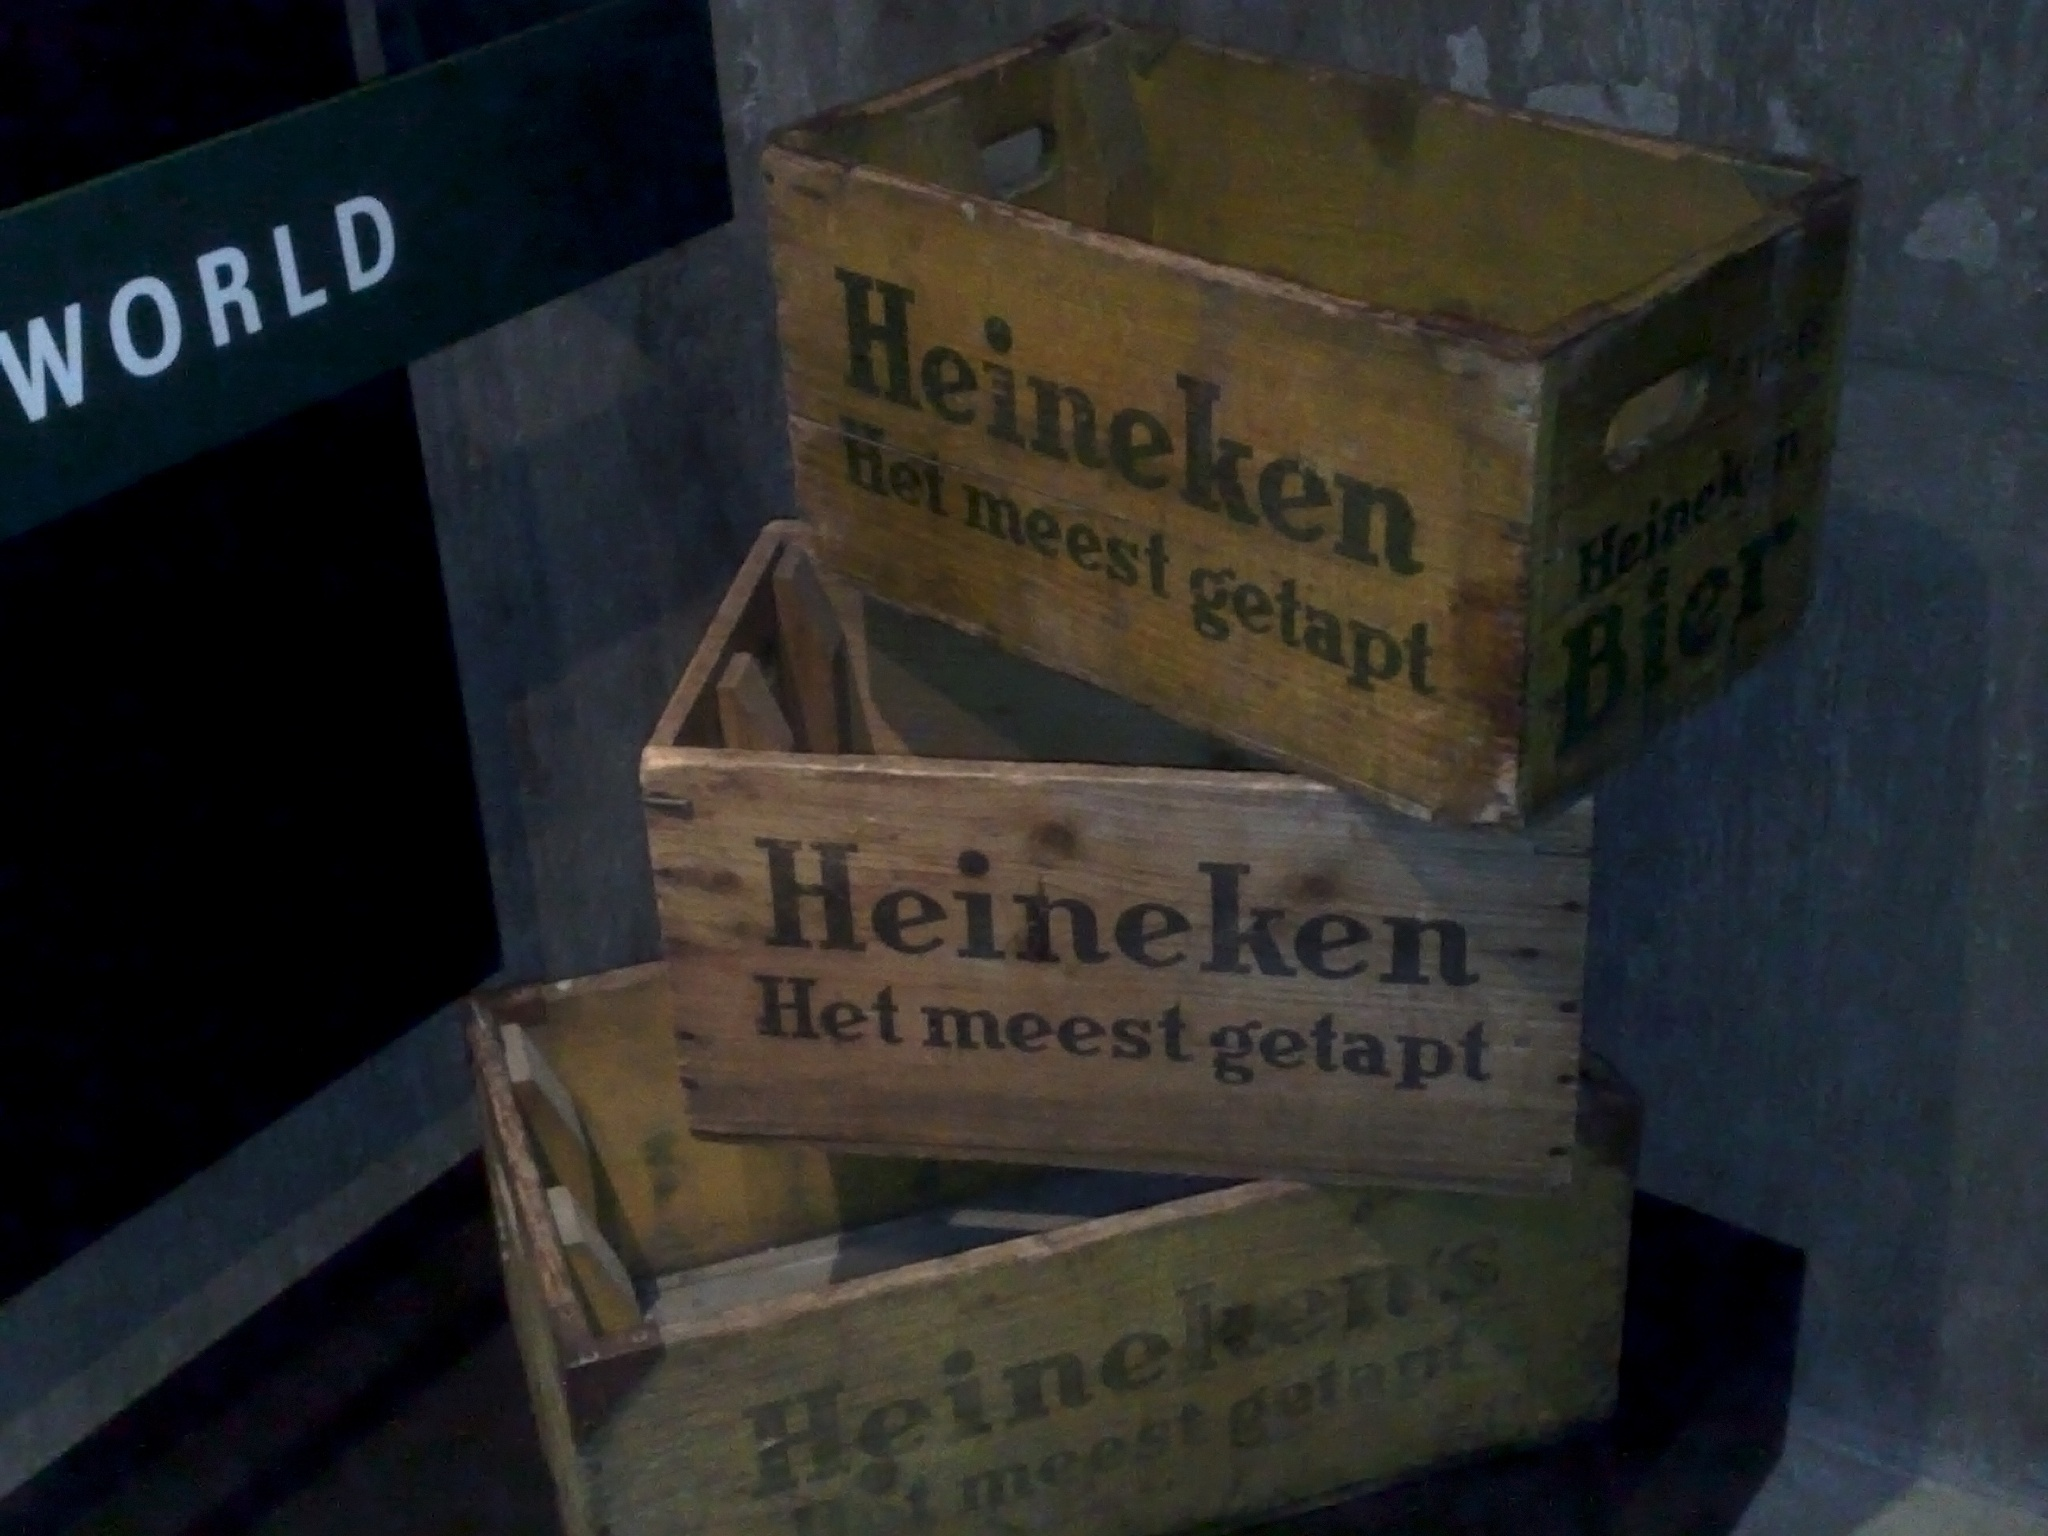 Some of the first cases of Heineken by vladoamigostravel